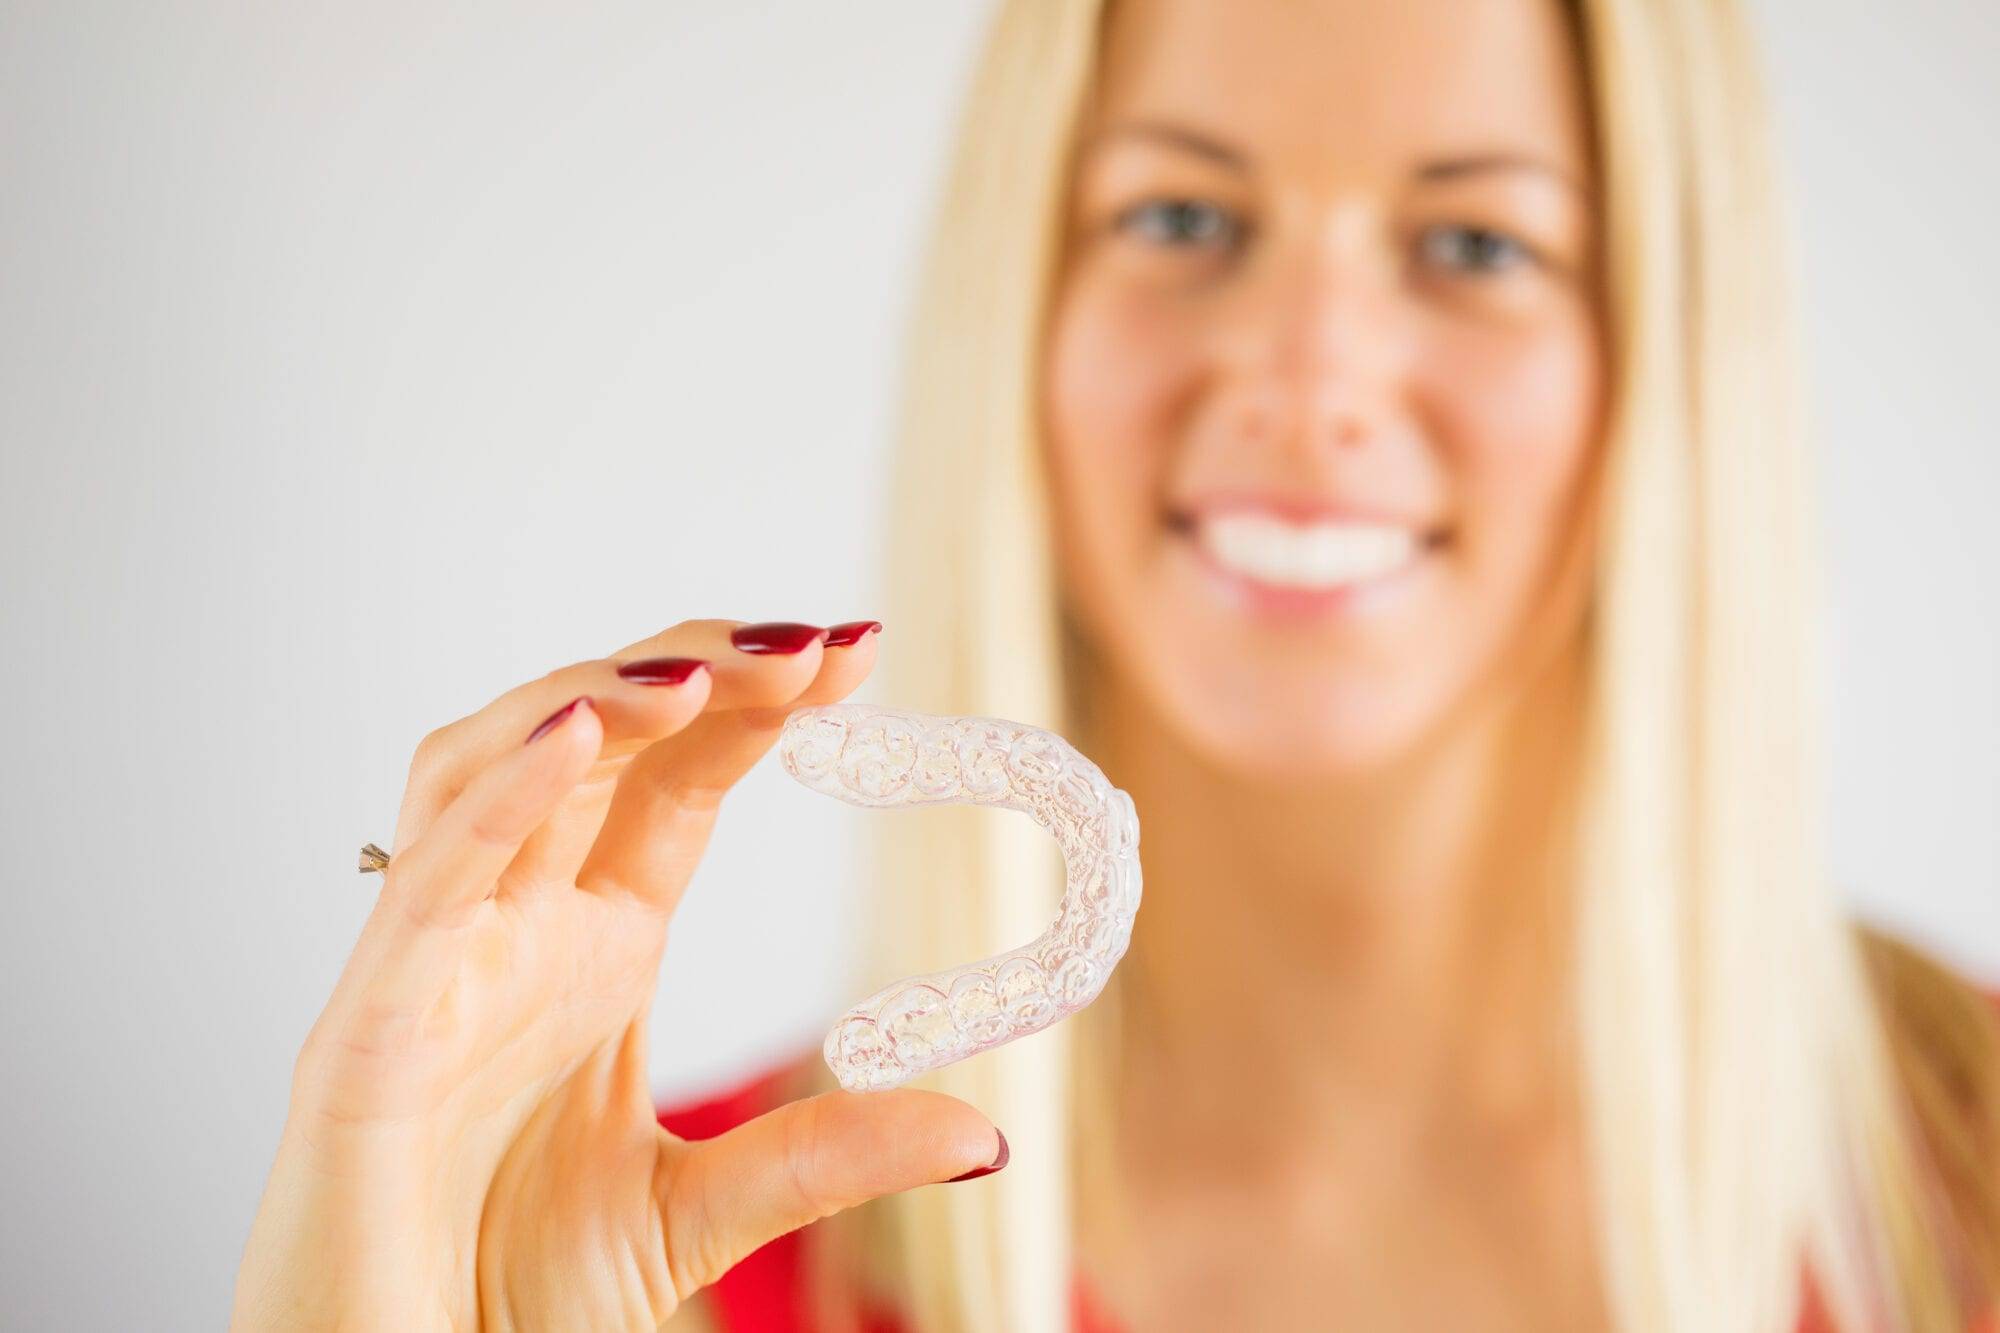 Woman holding teeth whitening tray